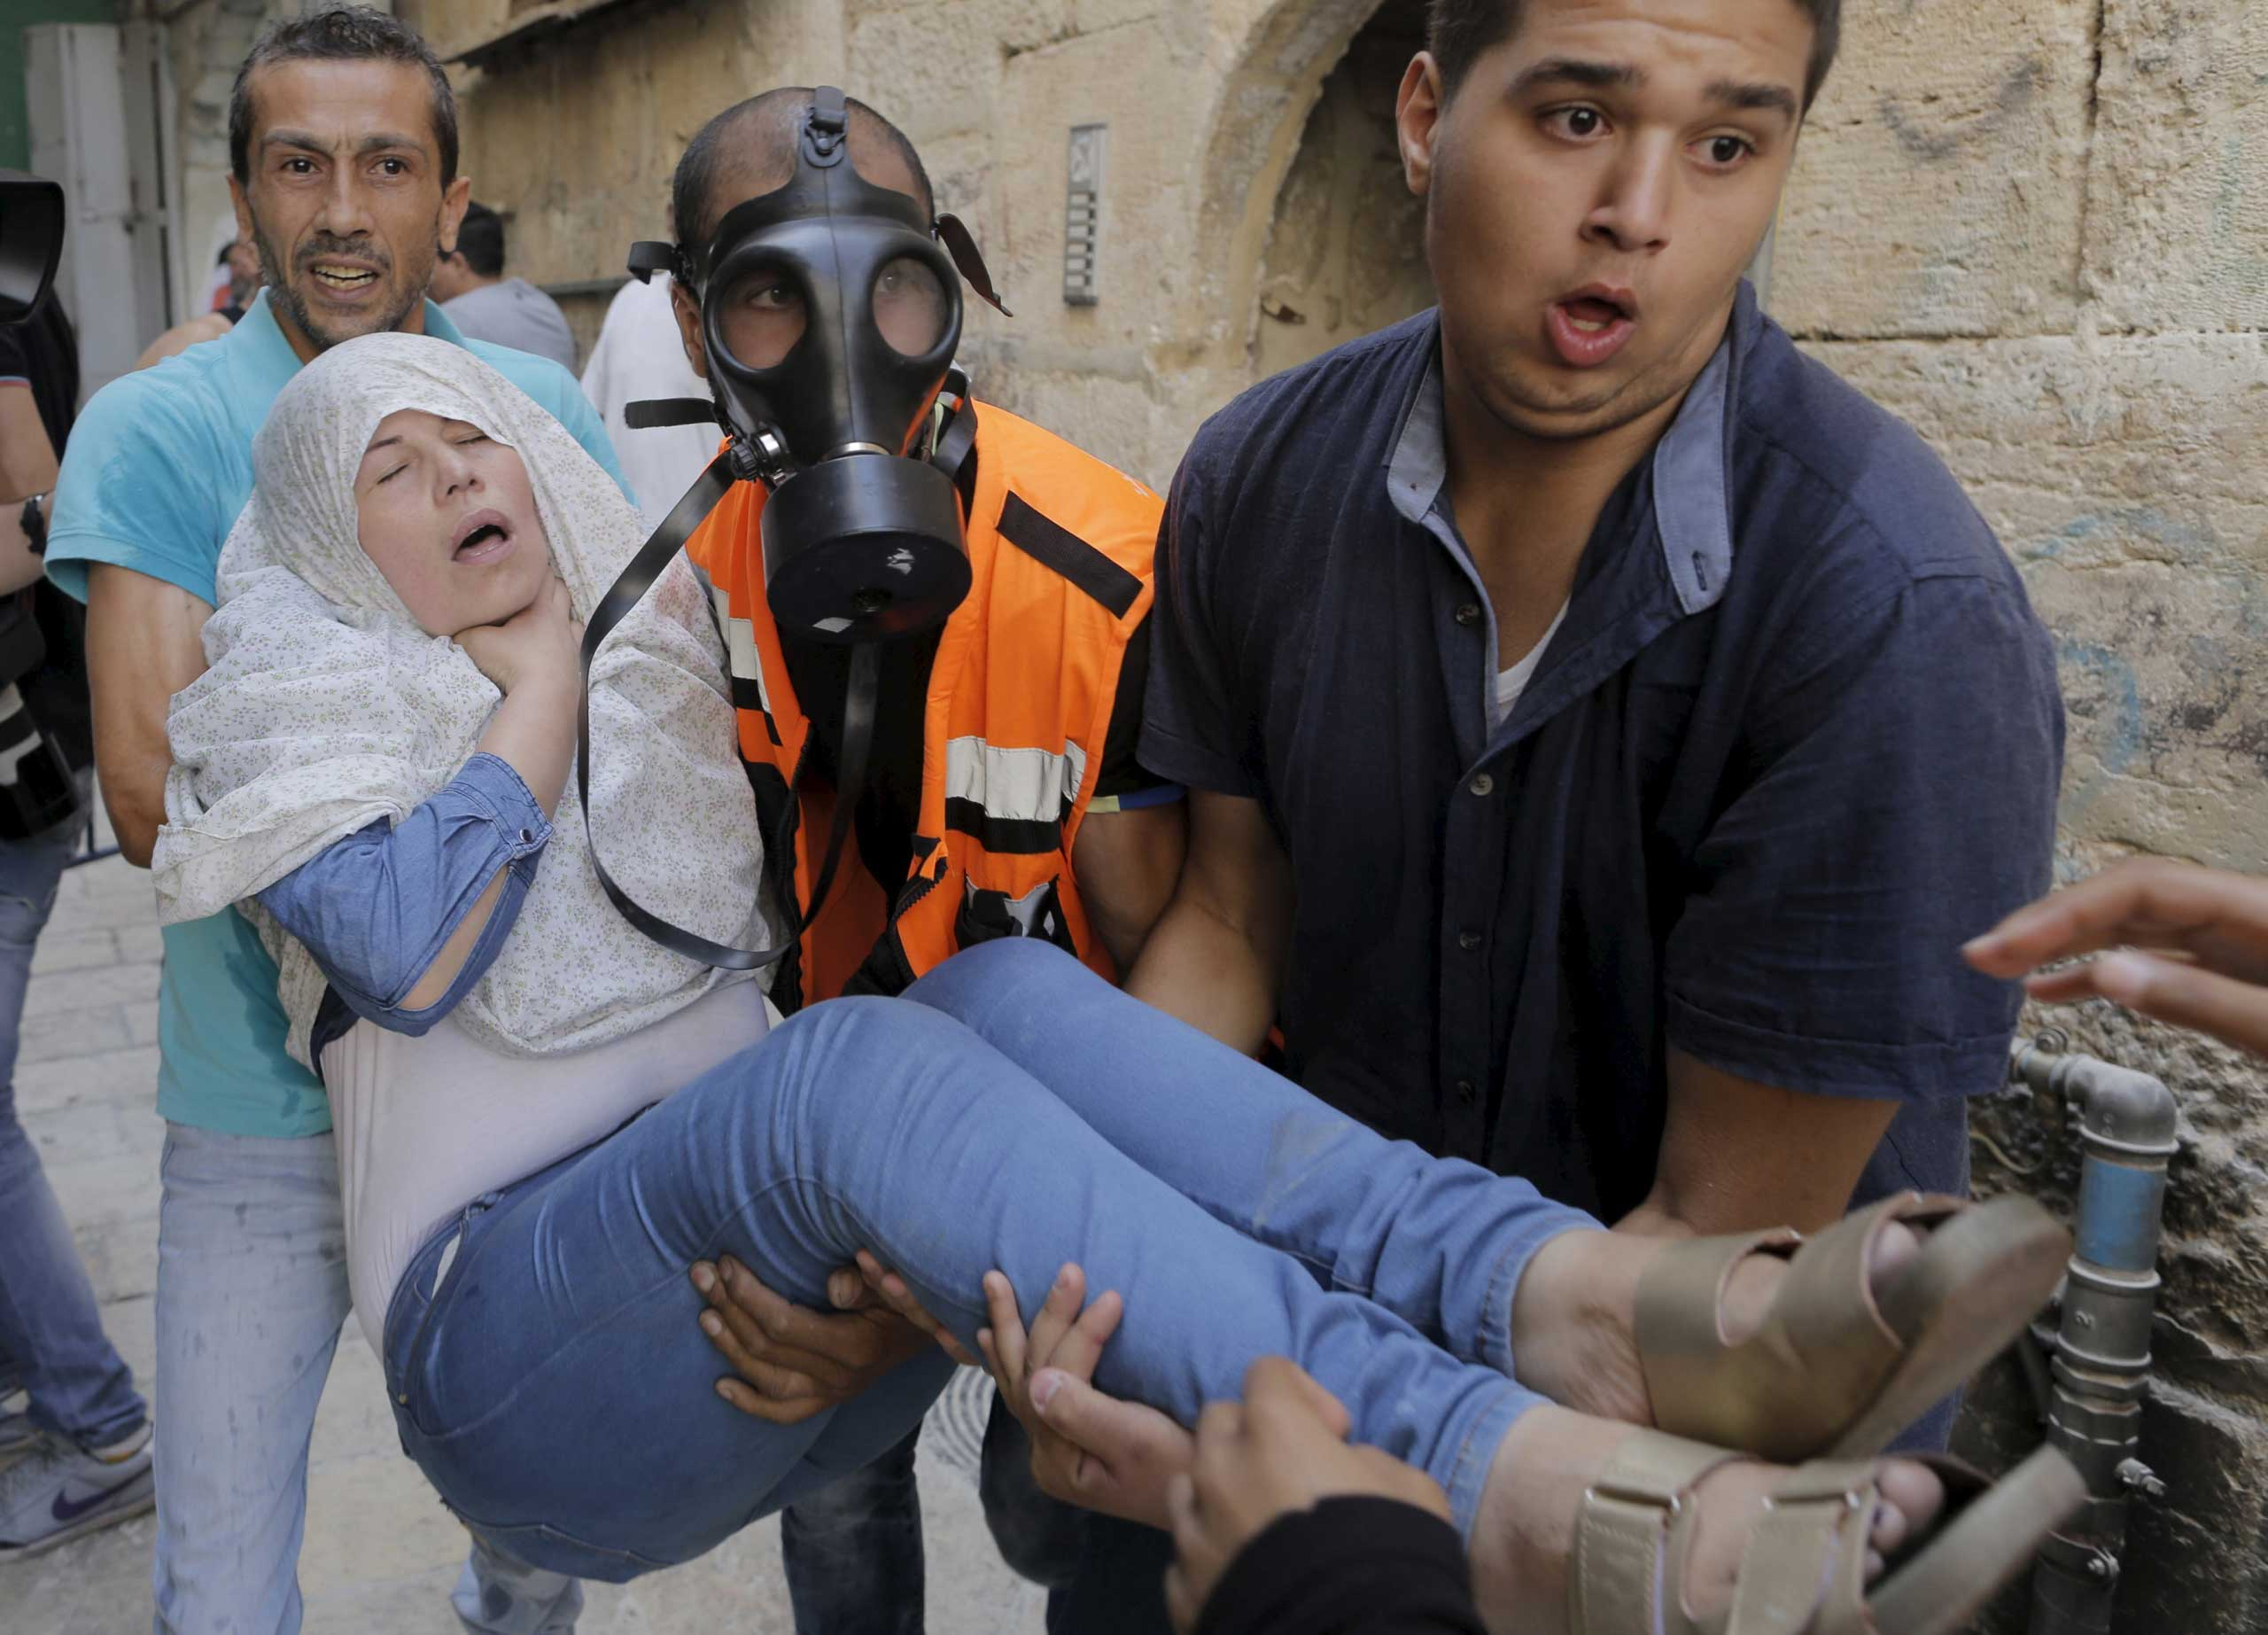 A Palestinian woman affected by tear gas is evacuated by medics during clashes between stone-throwing Palestinians and Israeli police in Jerusalem's Old City, on Sept. 15, 2015.